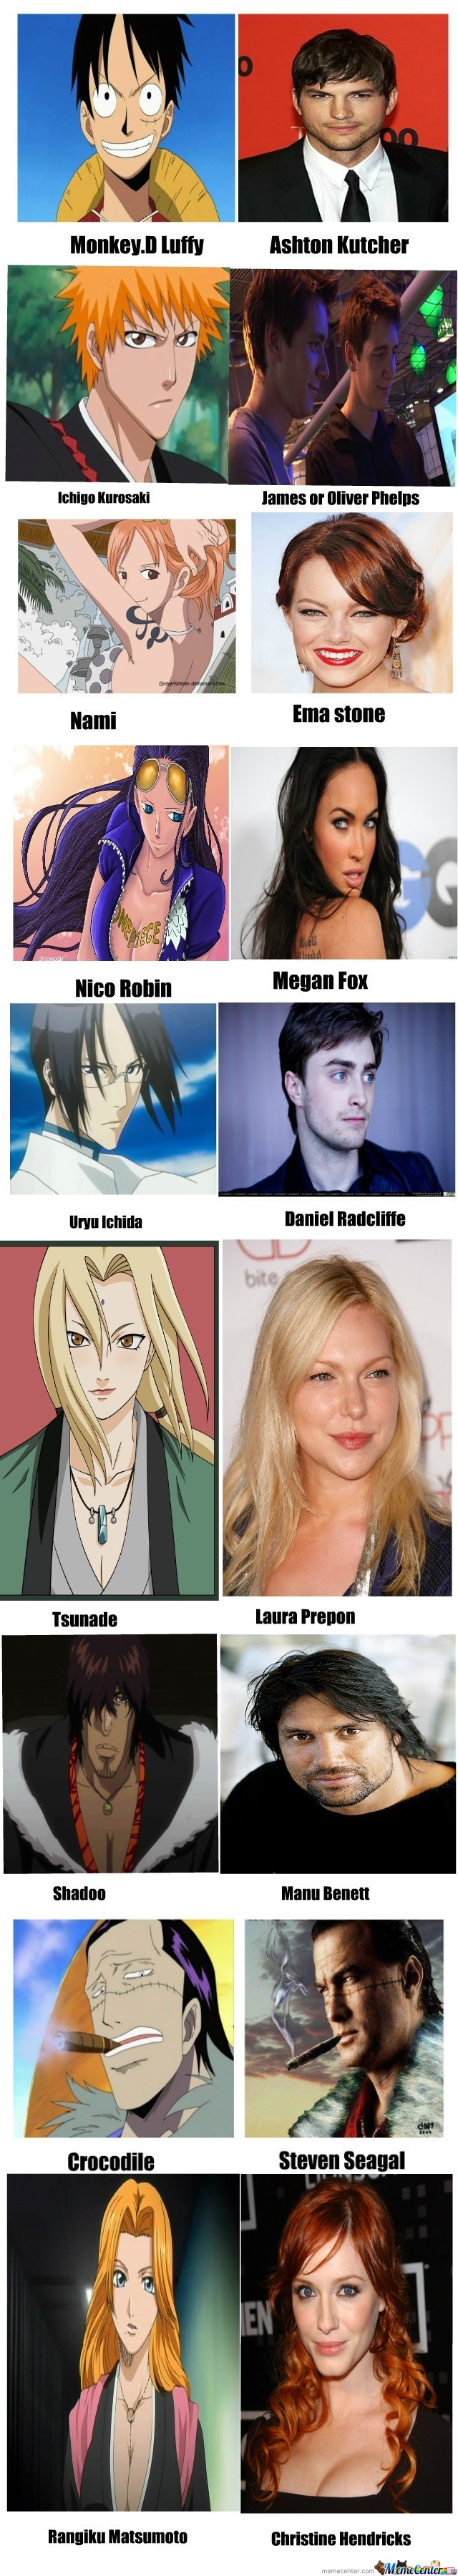 Some Hollywood Actors Who Could Play Anime Characters